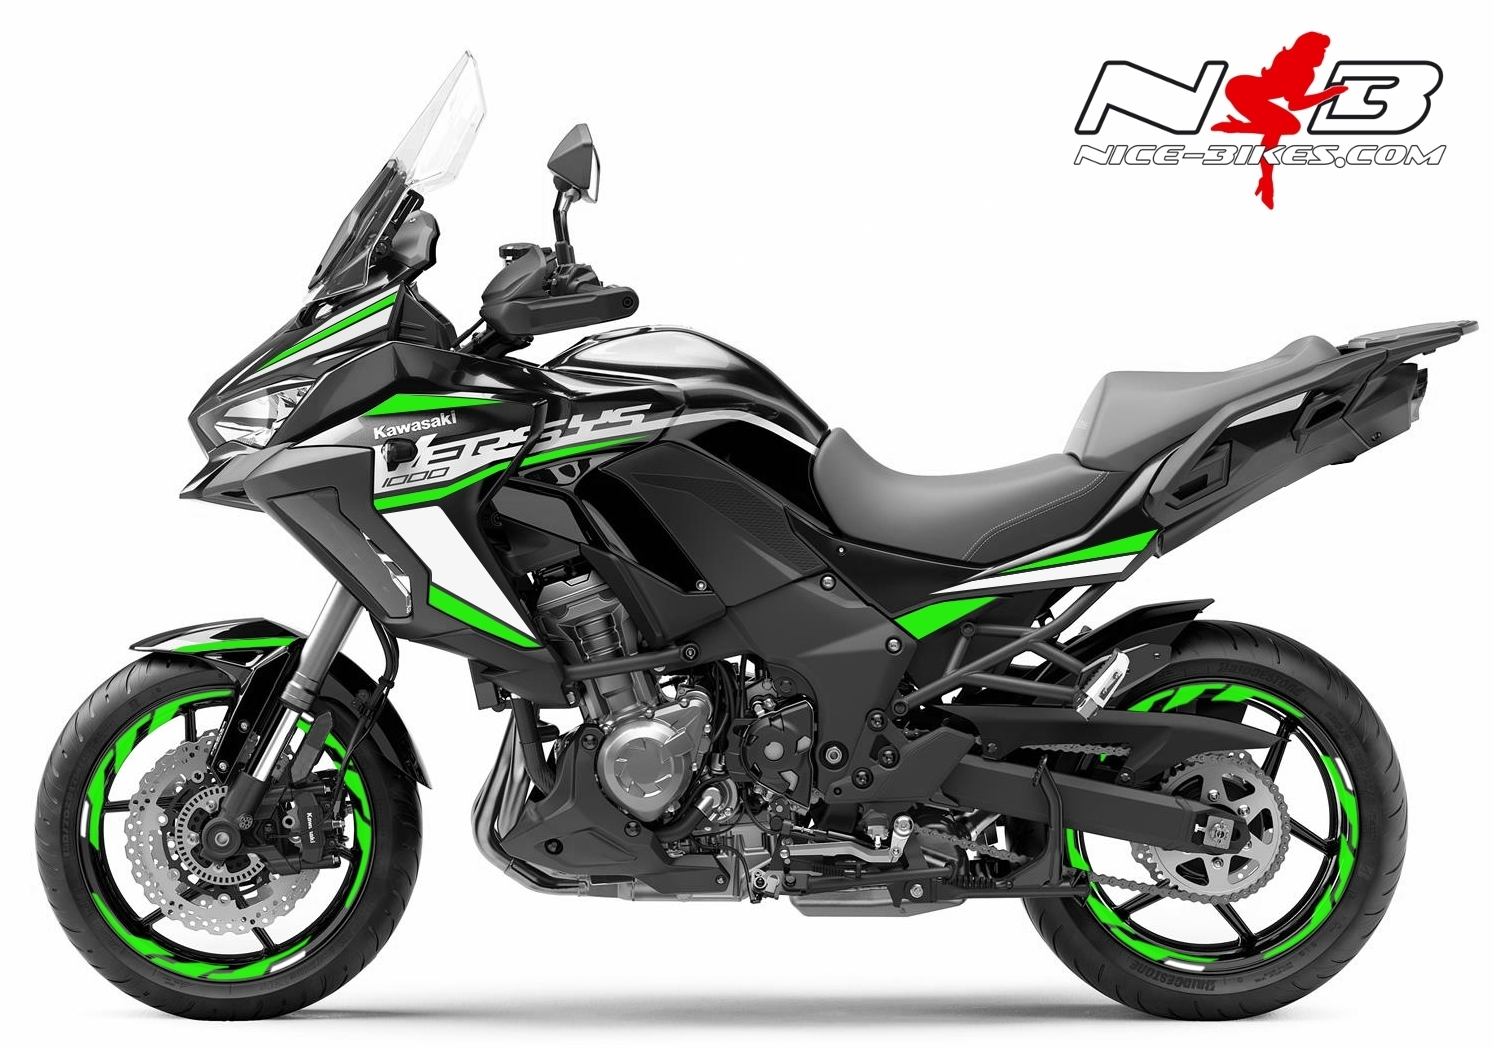 Foliendesign Kawasaki Versys 1000 Bj. 2020 Lime Green